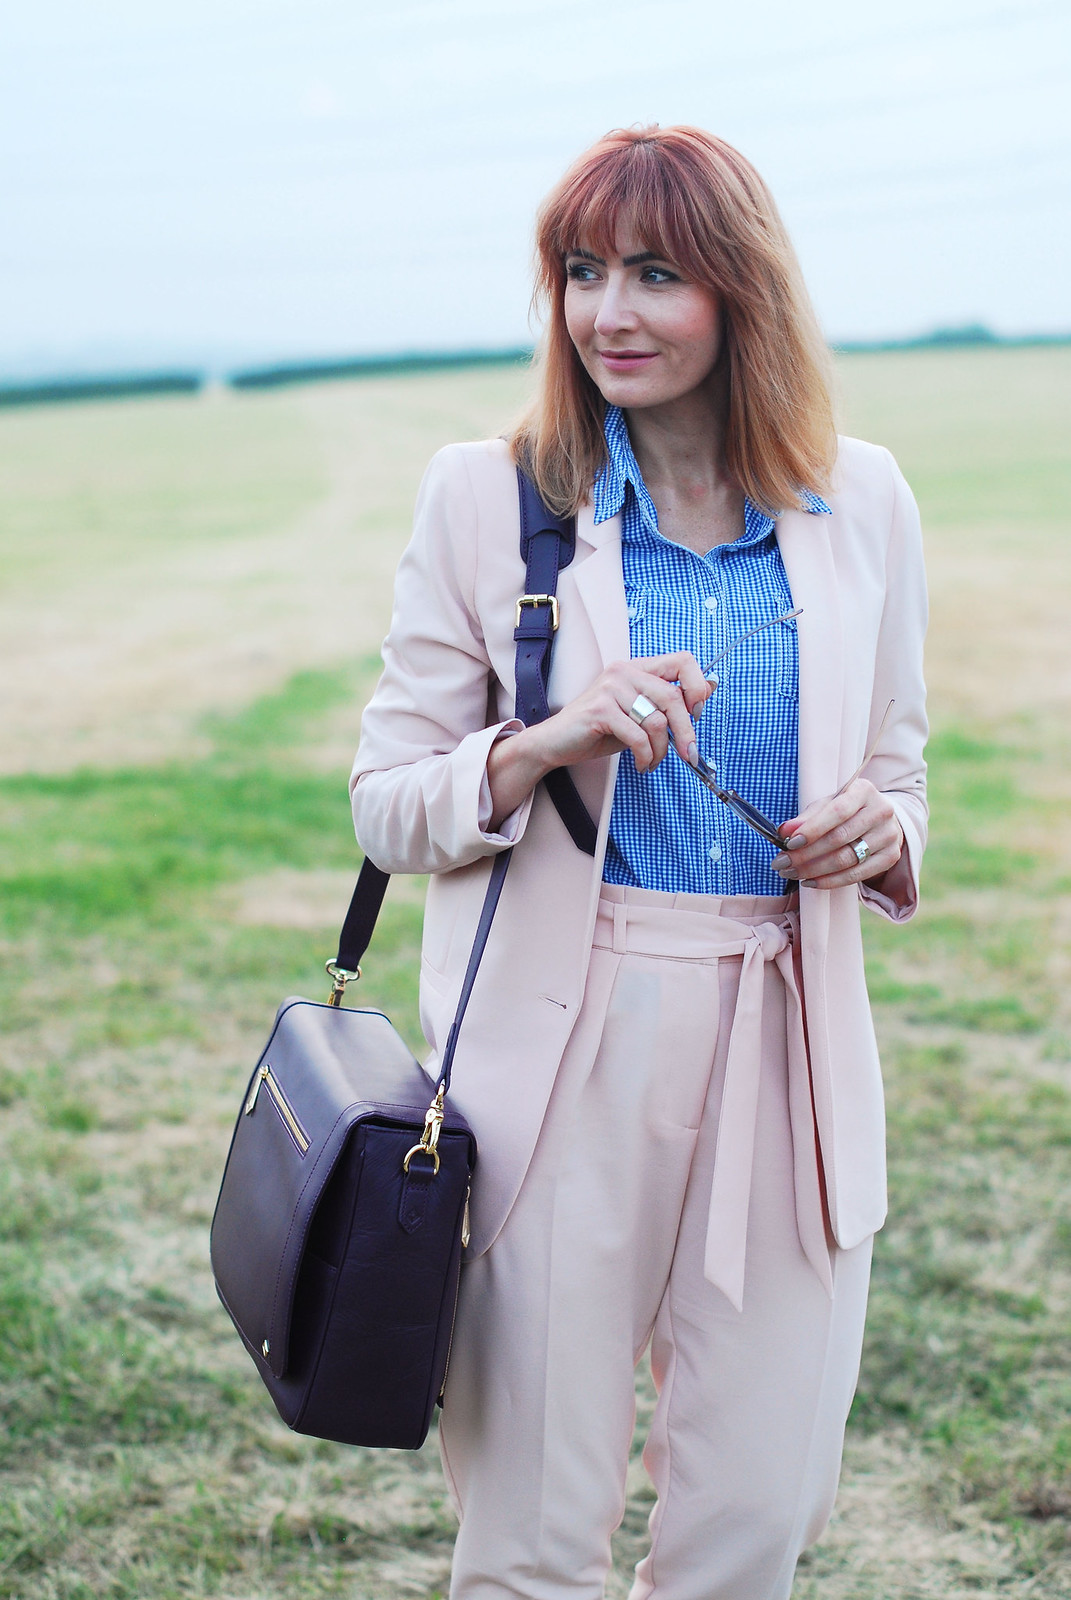 Summer workwear: Pale pink trouser suit, blue gingham shirt, Jennifer Hamley Model KT Workbag in Aubergine | Not Dressed As Lamb